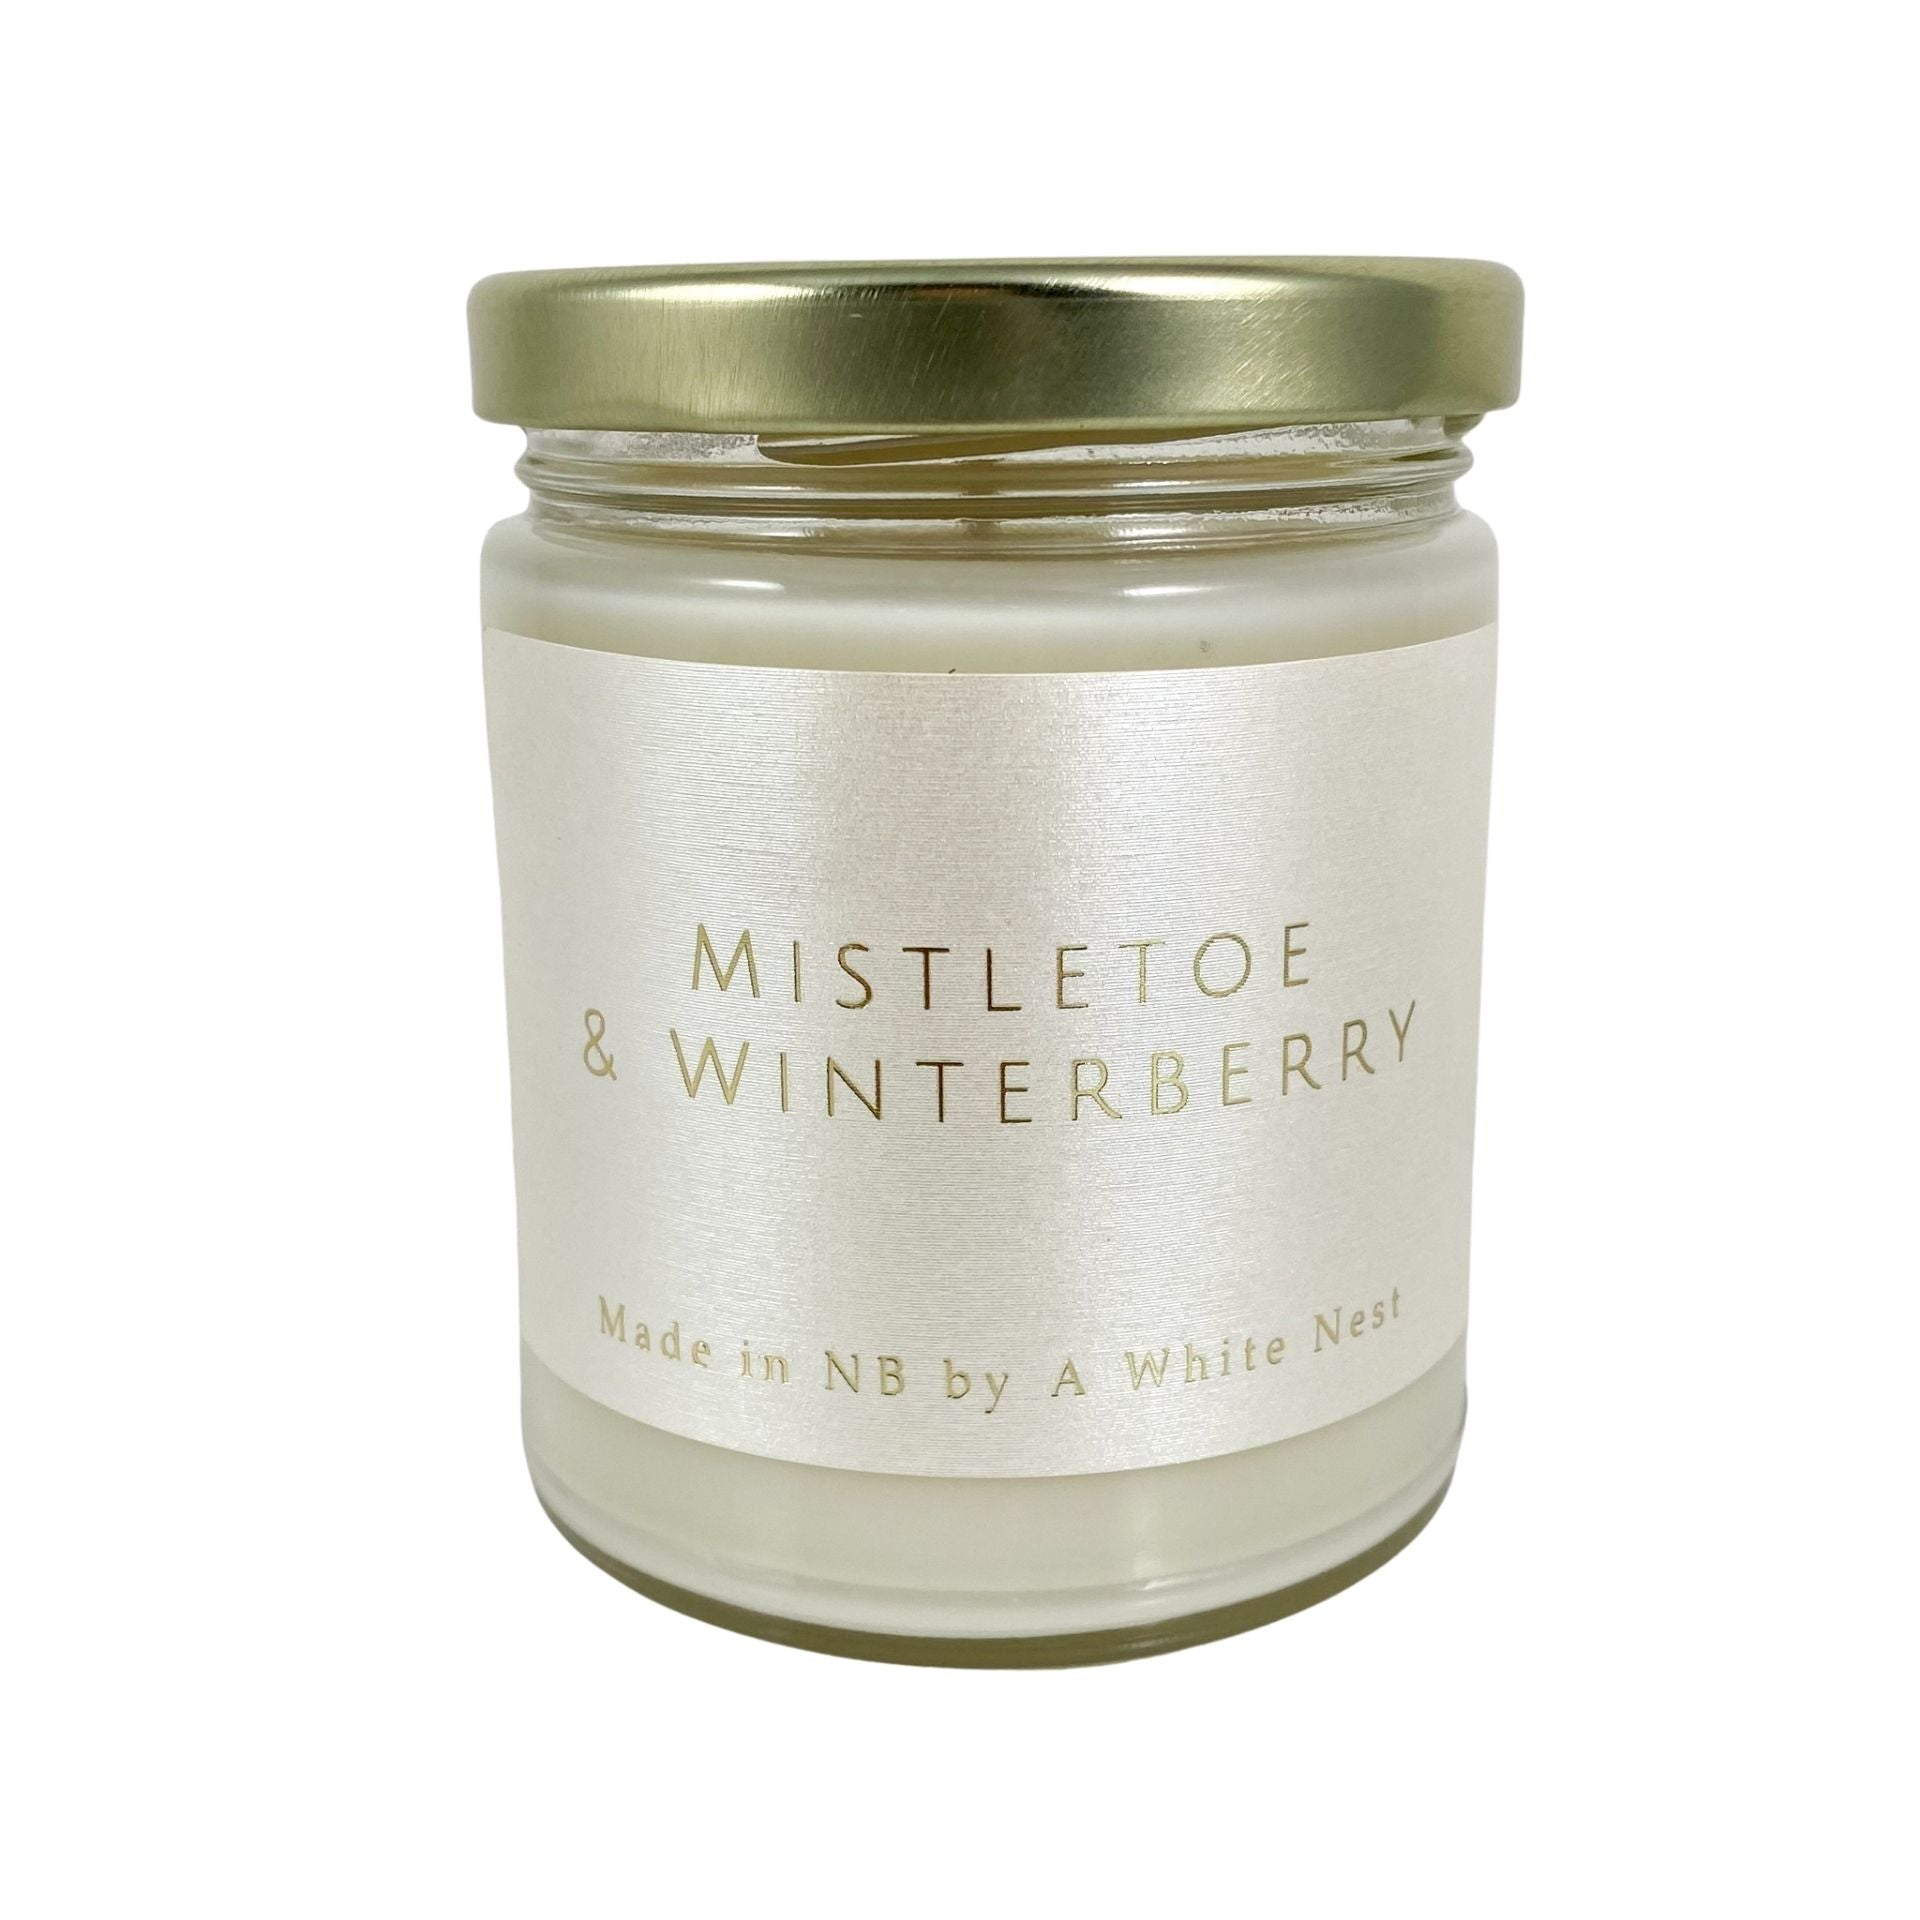 Mistletoe & Winterberry Soy Wax Candle